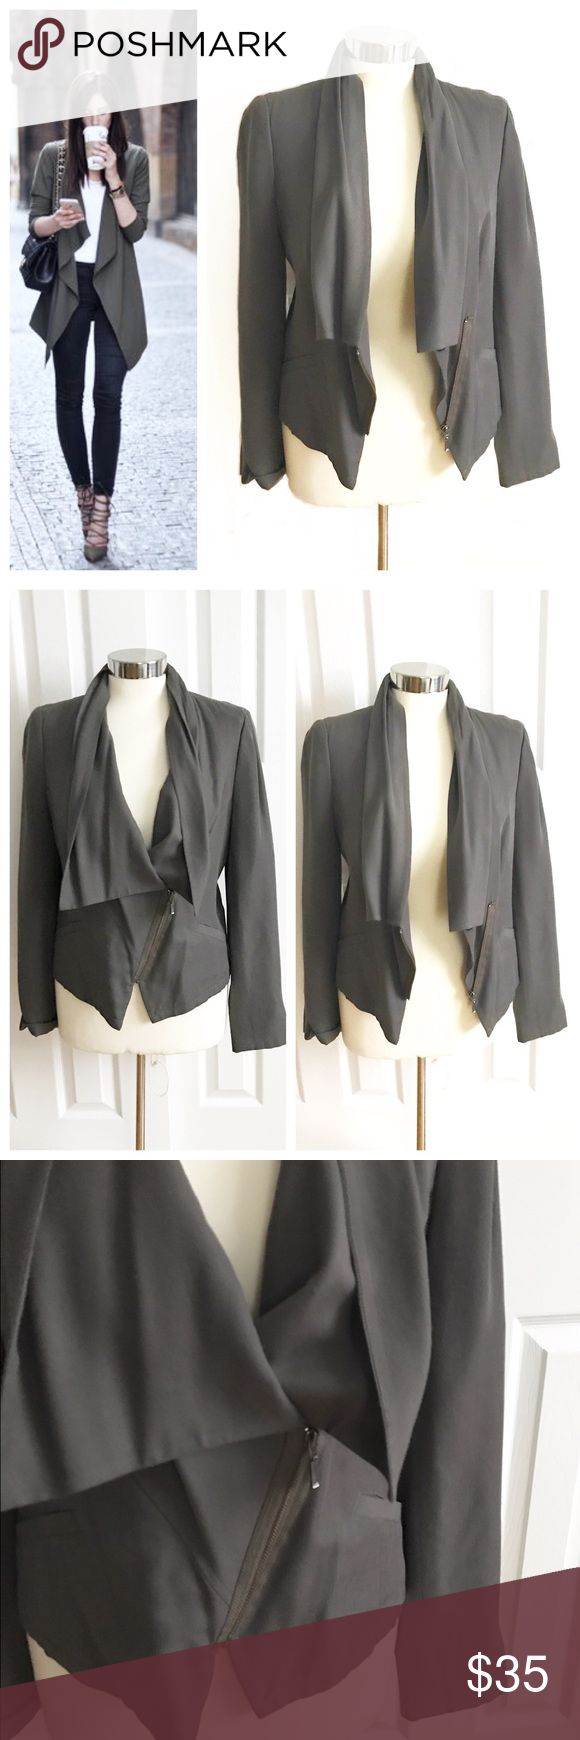 Halogen Gray Olive Green Blazer Jacket Causal blazer jacket with relaxed collar and lapels. Partial zip up with inside snap. The color is a grayish olive green. Some slight pilling starting under armpit. Halogen brand from Nordstrom size 10. Great for work or wear more casually with jeans! First photo on left not actual item just showing for styling inspiration! Halogen Jackets & Coats